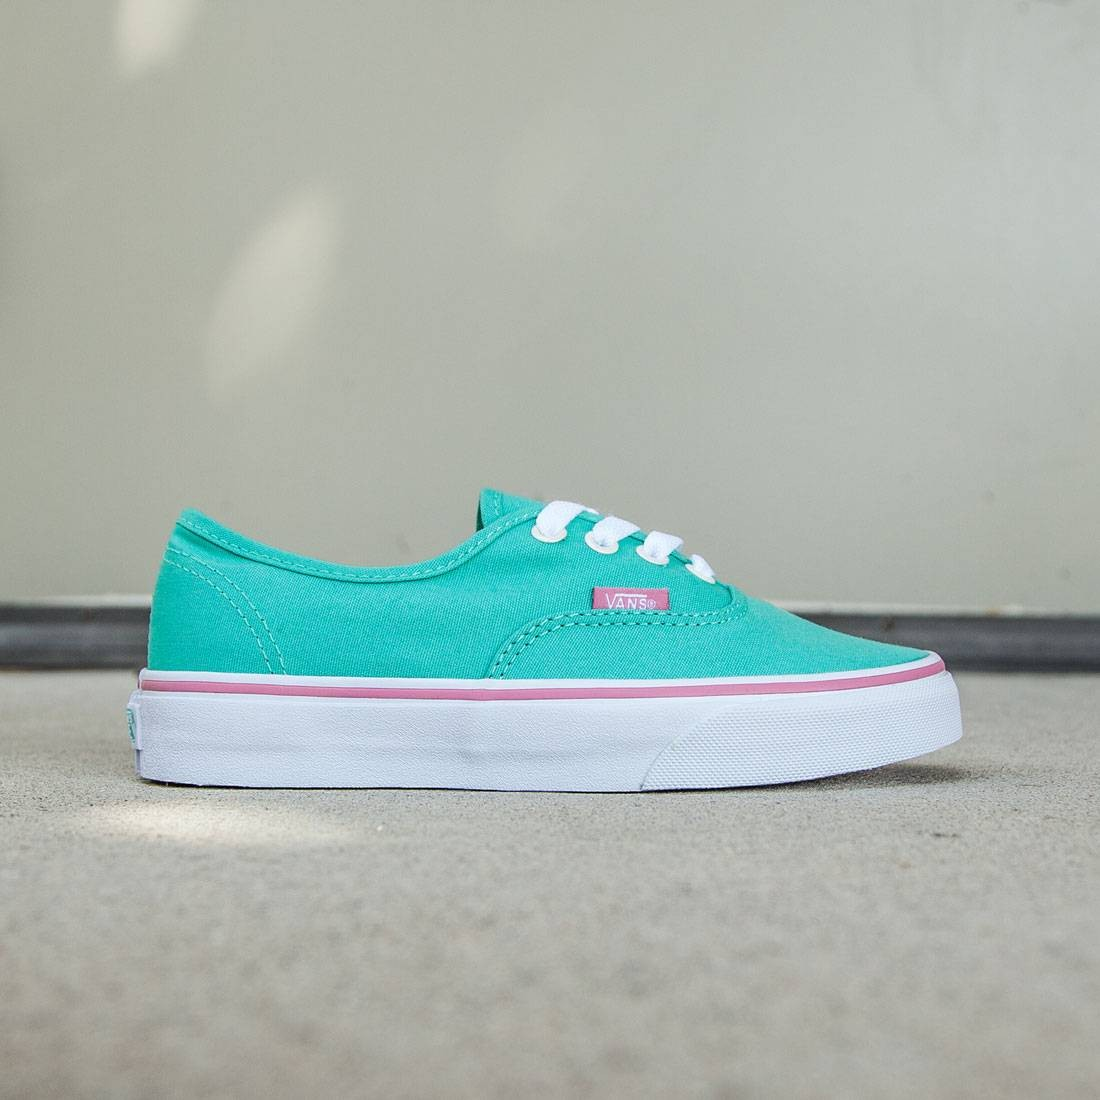 7b9297e270fd Vans Women Authentic - Iridescent Eyelets teal florida keys